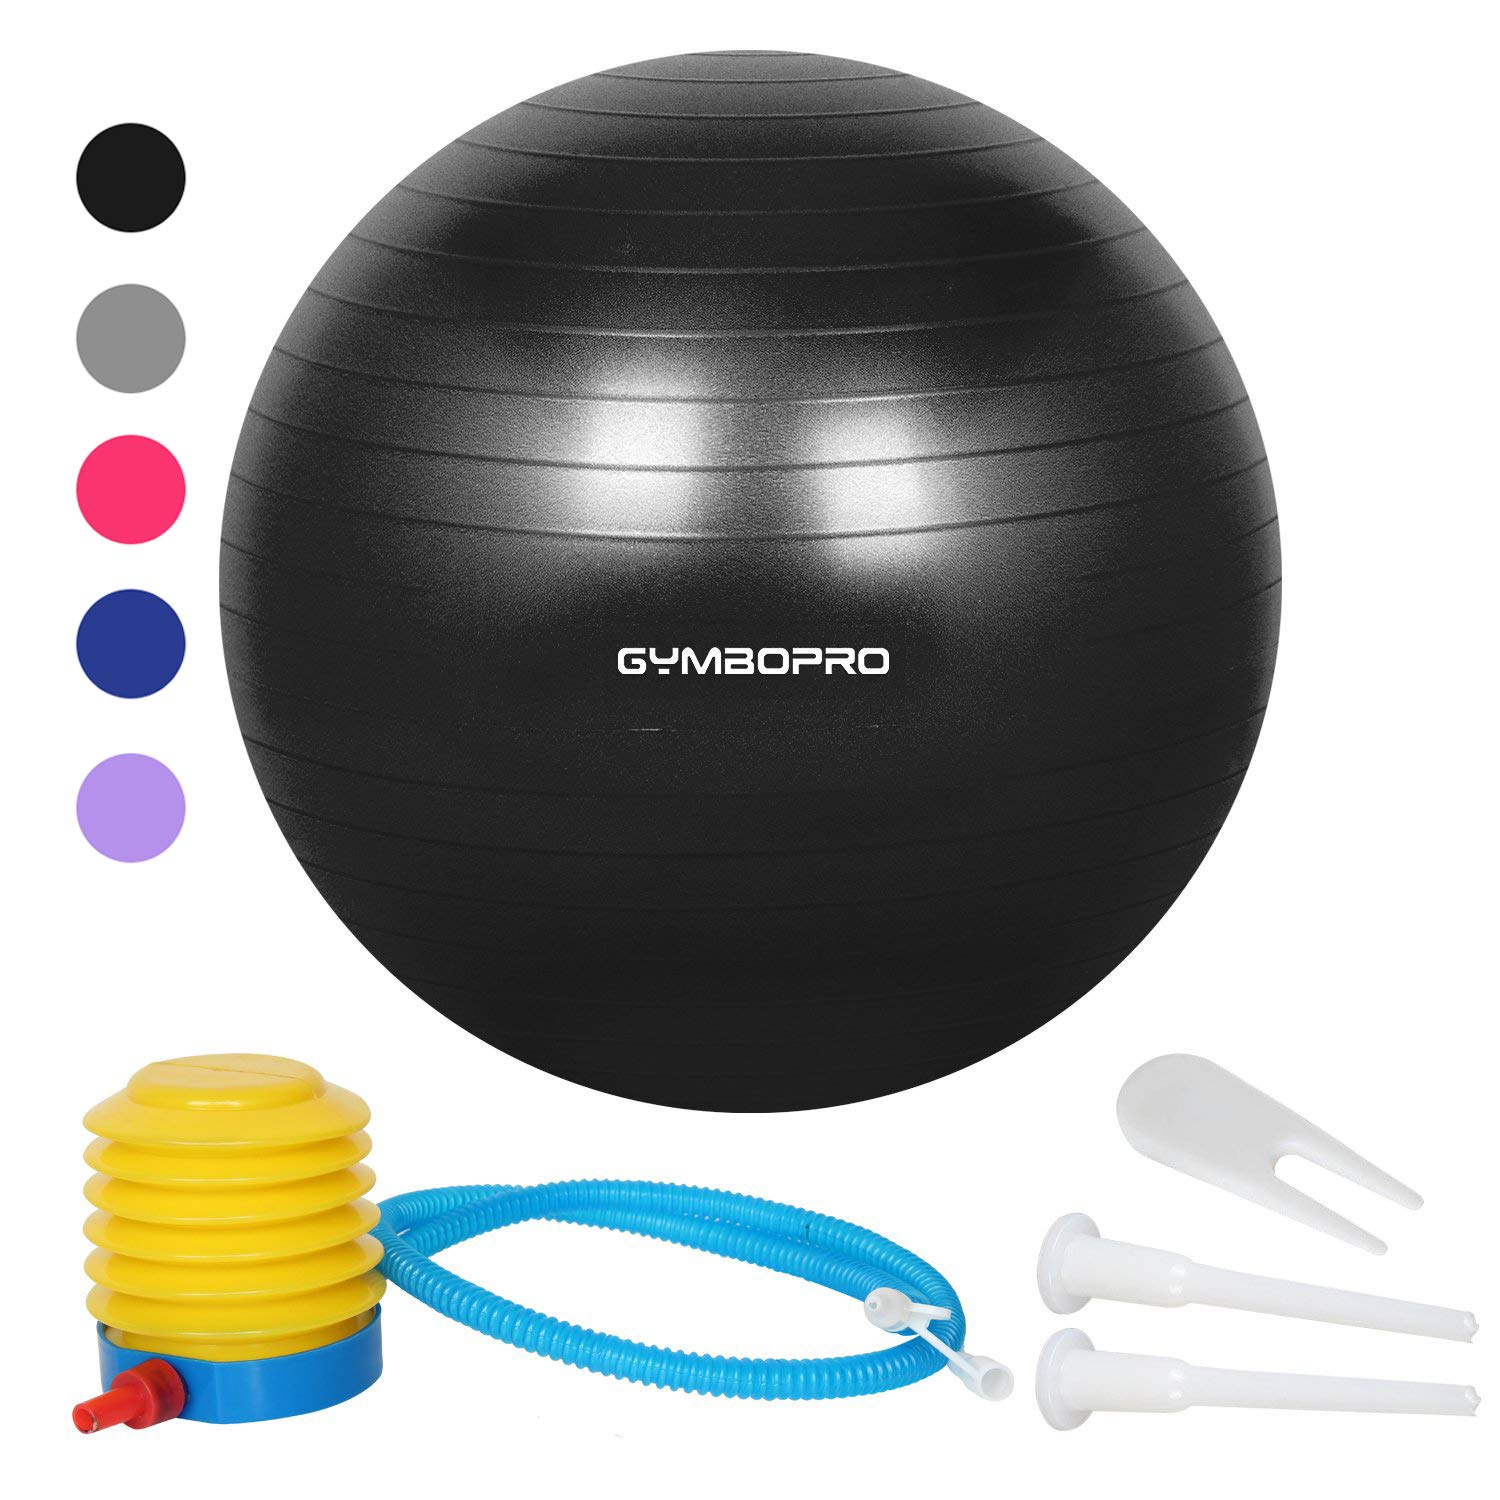 GYMBOPRO Exercise Ball (55-75cm) Heavy Duty Stability Ball Chair Anti Burst Birthing Ball with Quick Pump for Fitness, Balance, Pilates & Yoga